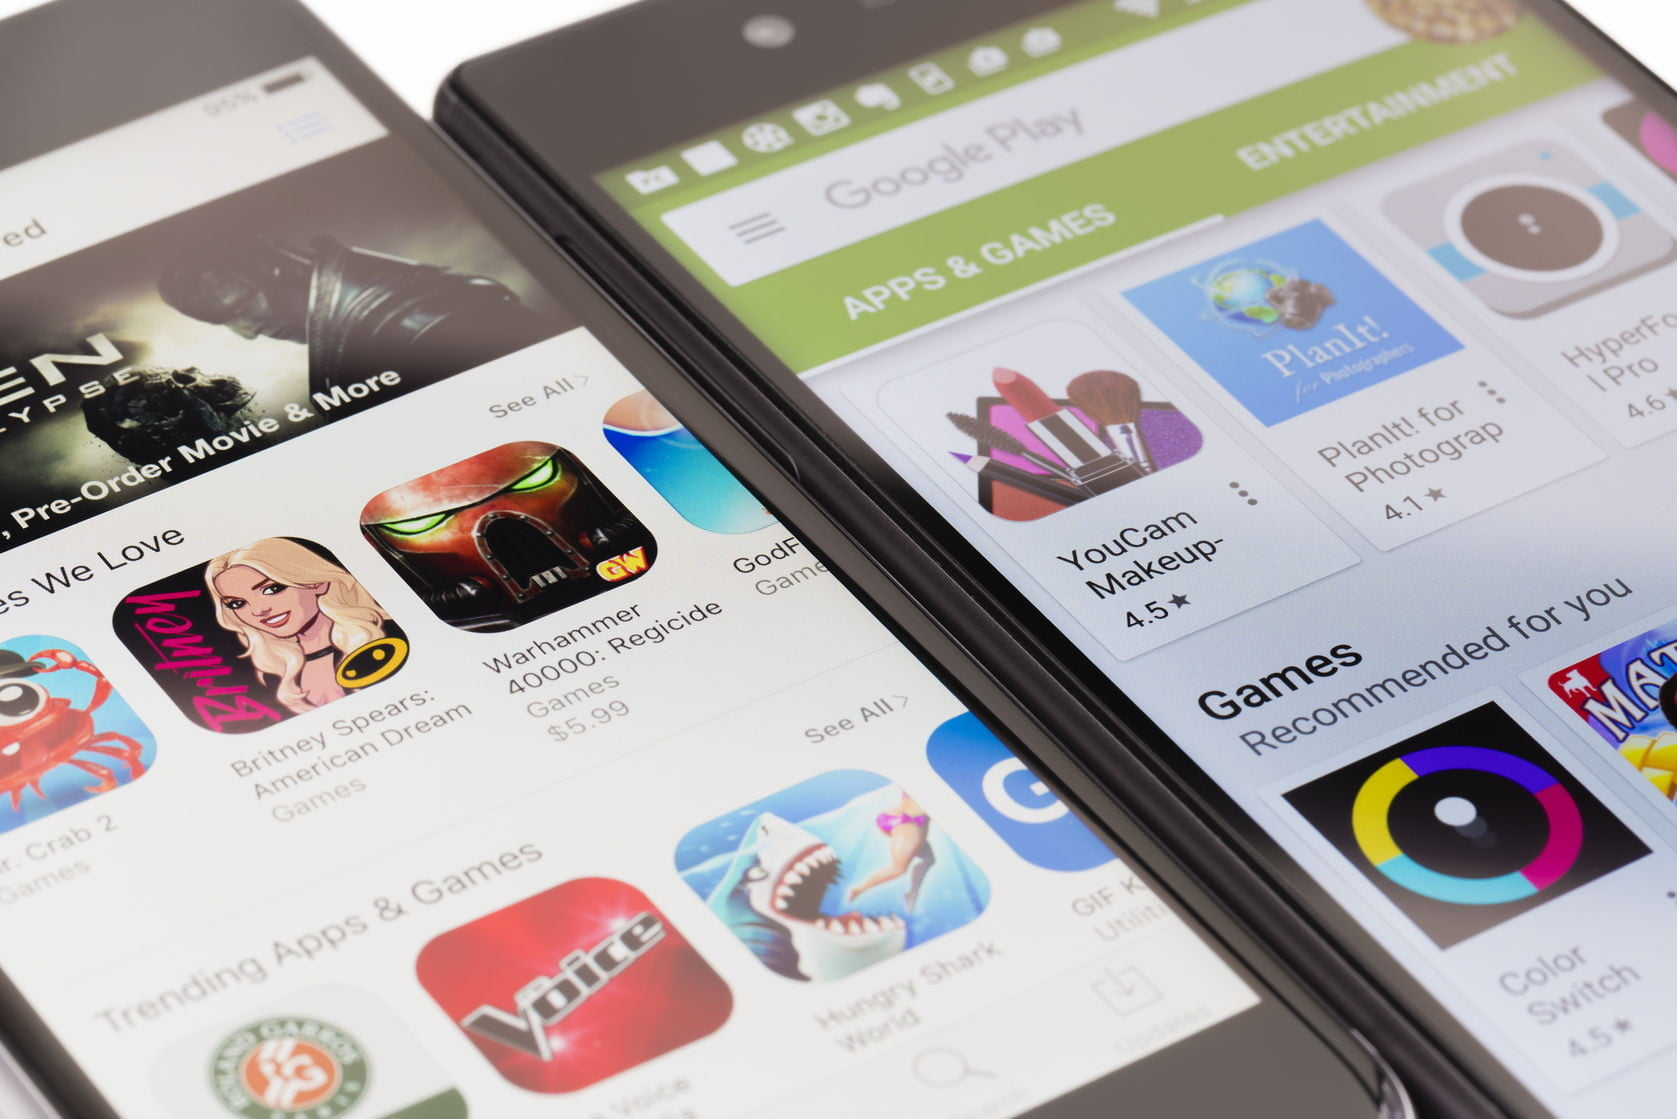 Machine Learning is Making Google Play a Whole Lot Safer